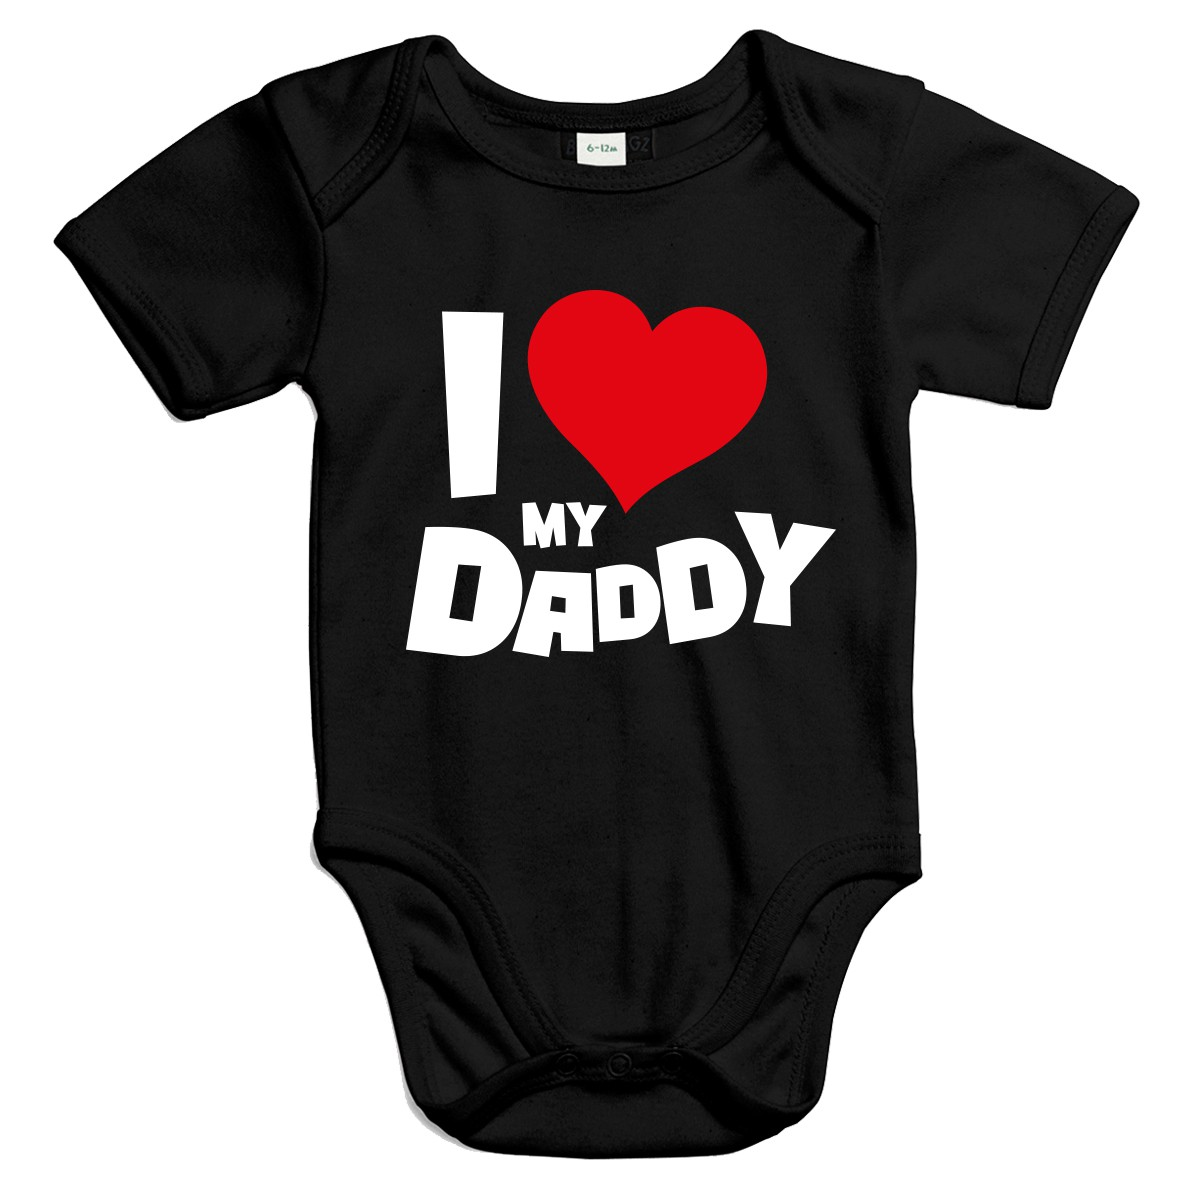 I love My Dad - Baby Kurzarm Body aus Bio-Baumwolle